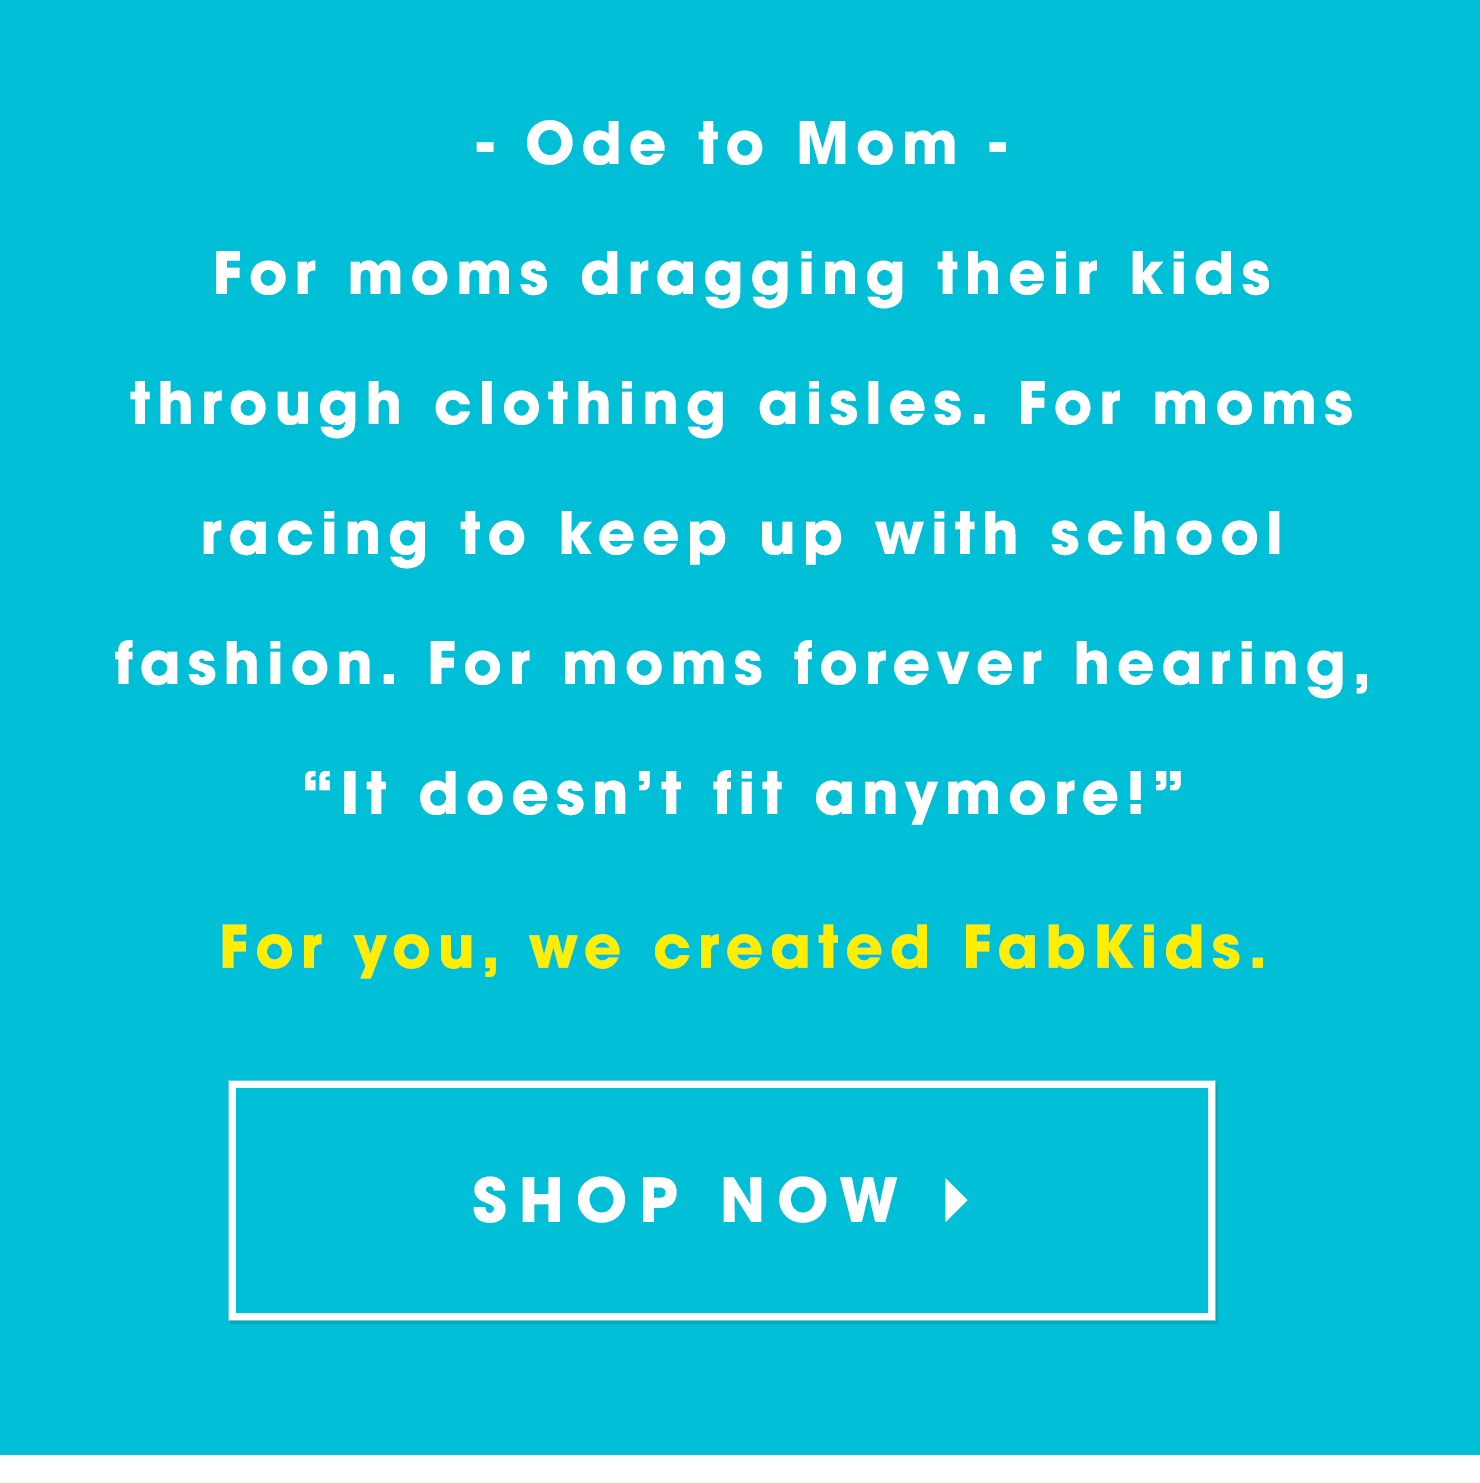 "Ode to Mom: For moms dragging their kids through clothing aisles. For moms racing to keep up with school fashion. For moms forever hearing, ""It doesn't fit anymore!� For you, we created FabKids."